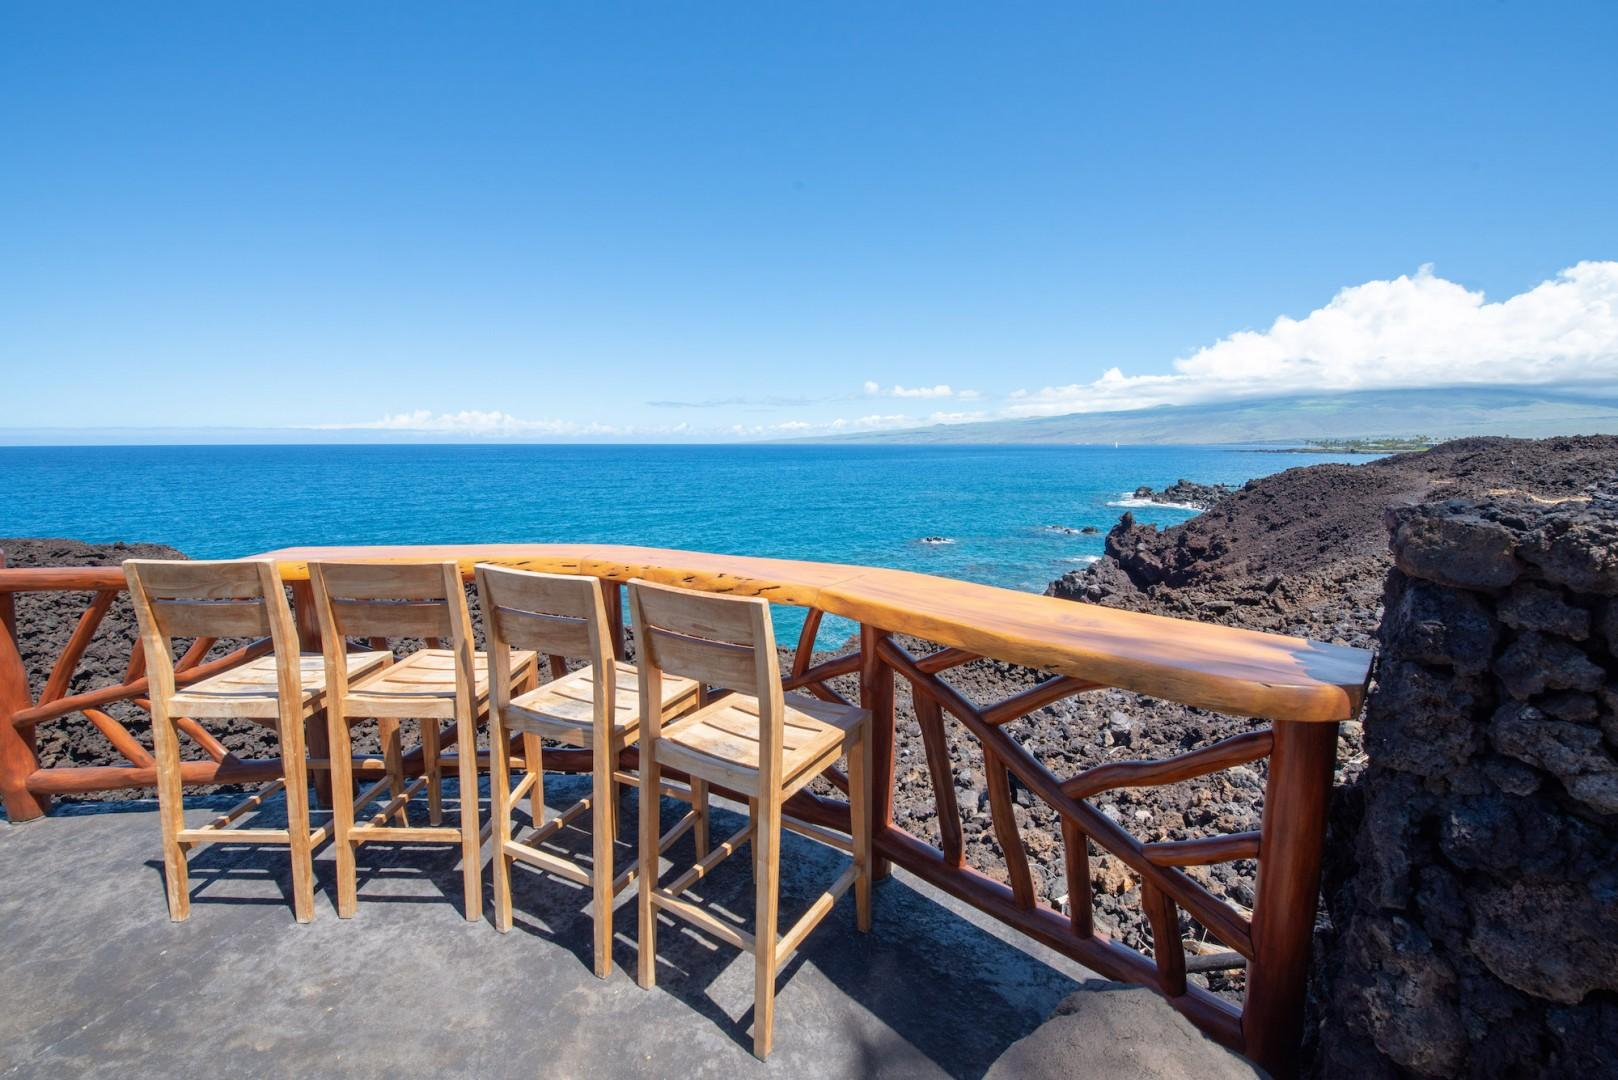 The Grotto Amenity Center Ocean and Epic Whale Watching Seats